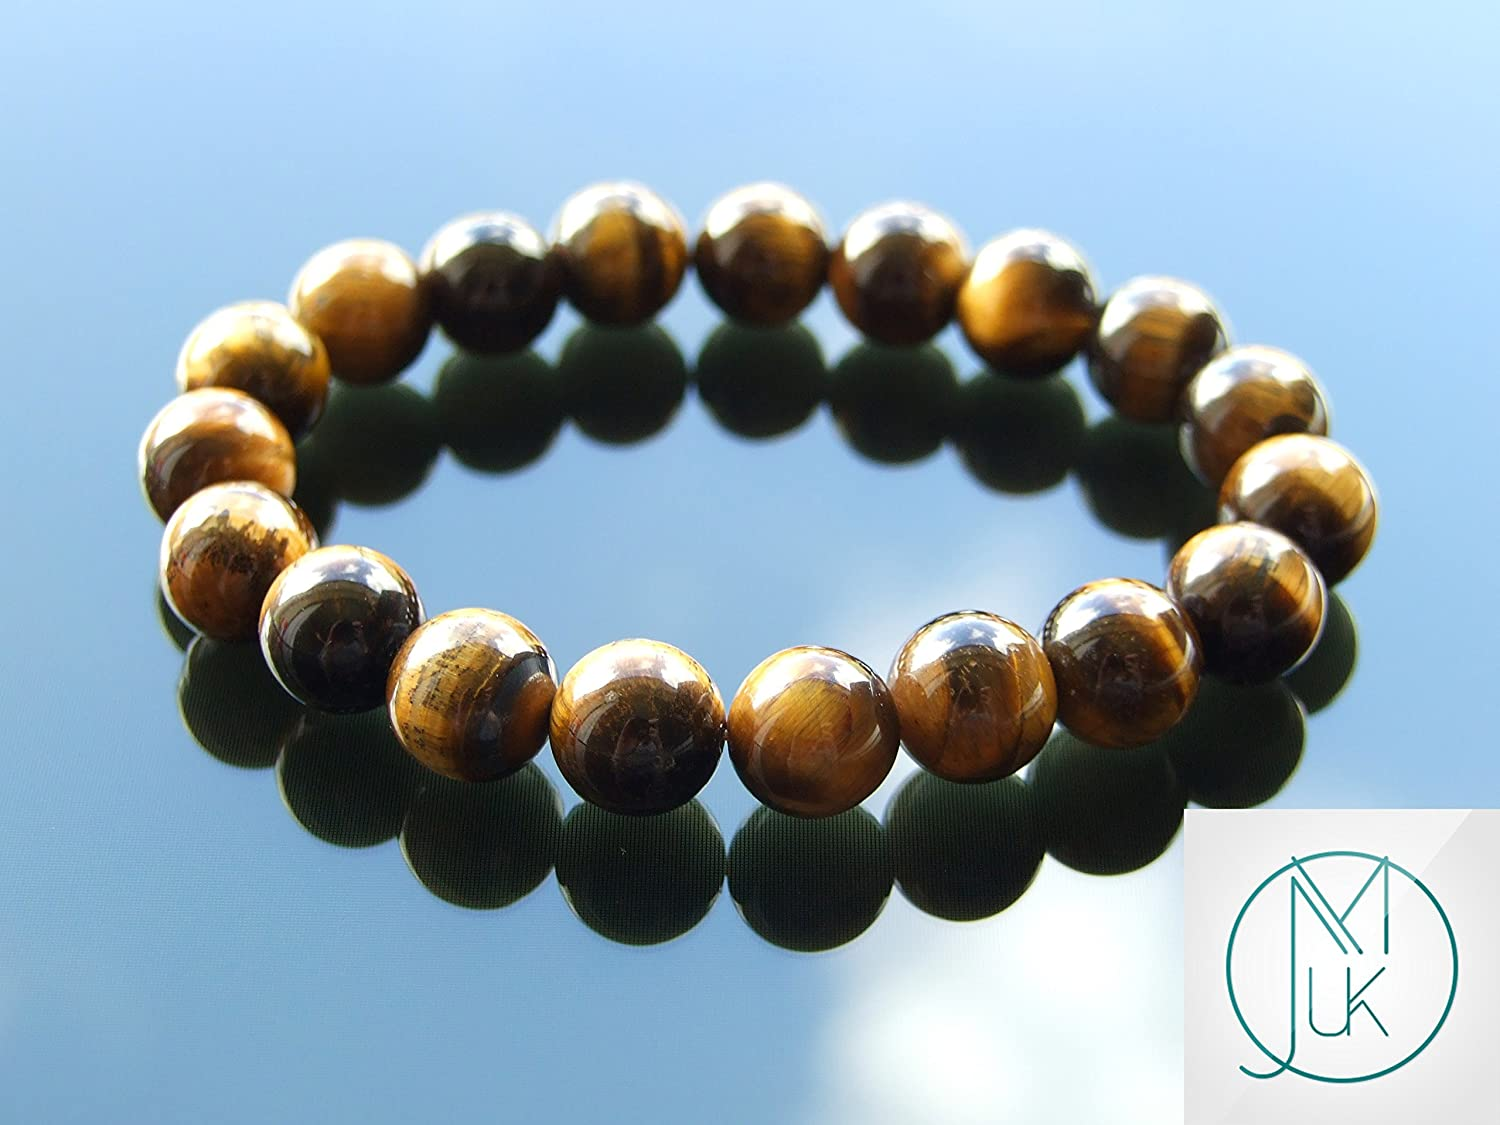 Yellow Tigers Eye 10mm Natural Gemstone Bracelet Beaded 6-9 Elasticated Healing Stone Chakra Reiki With Pouch FREE UK SHIPPING